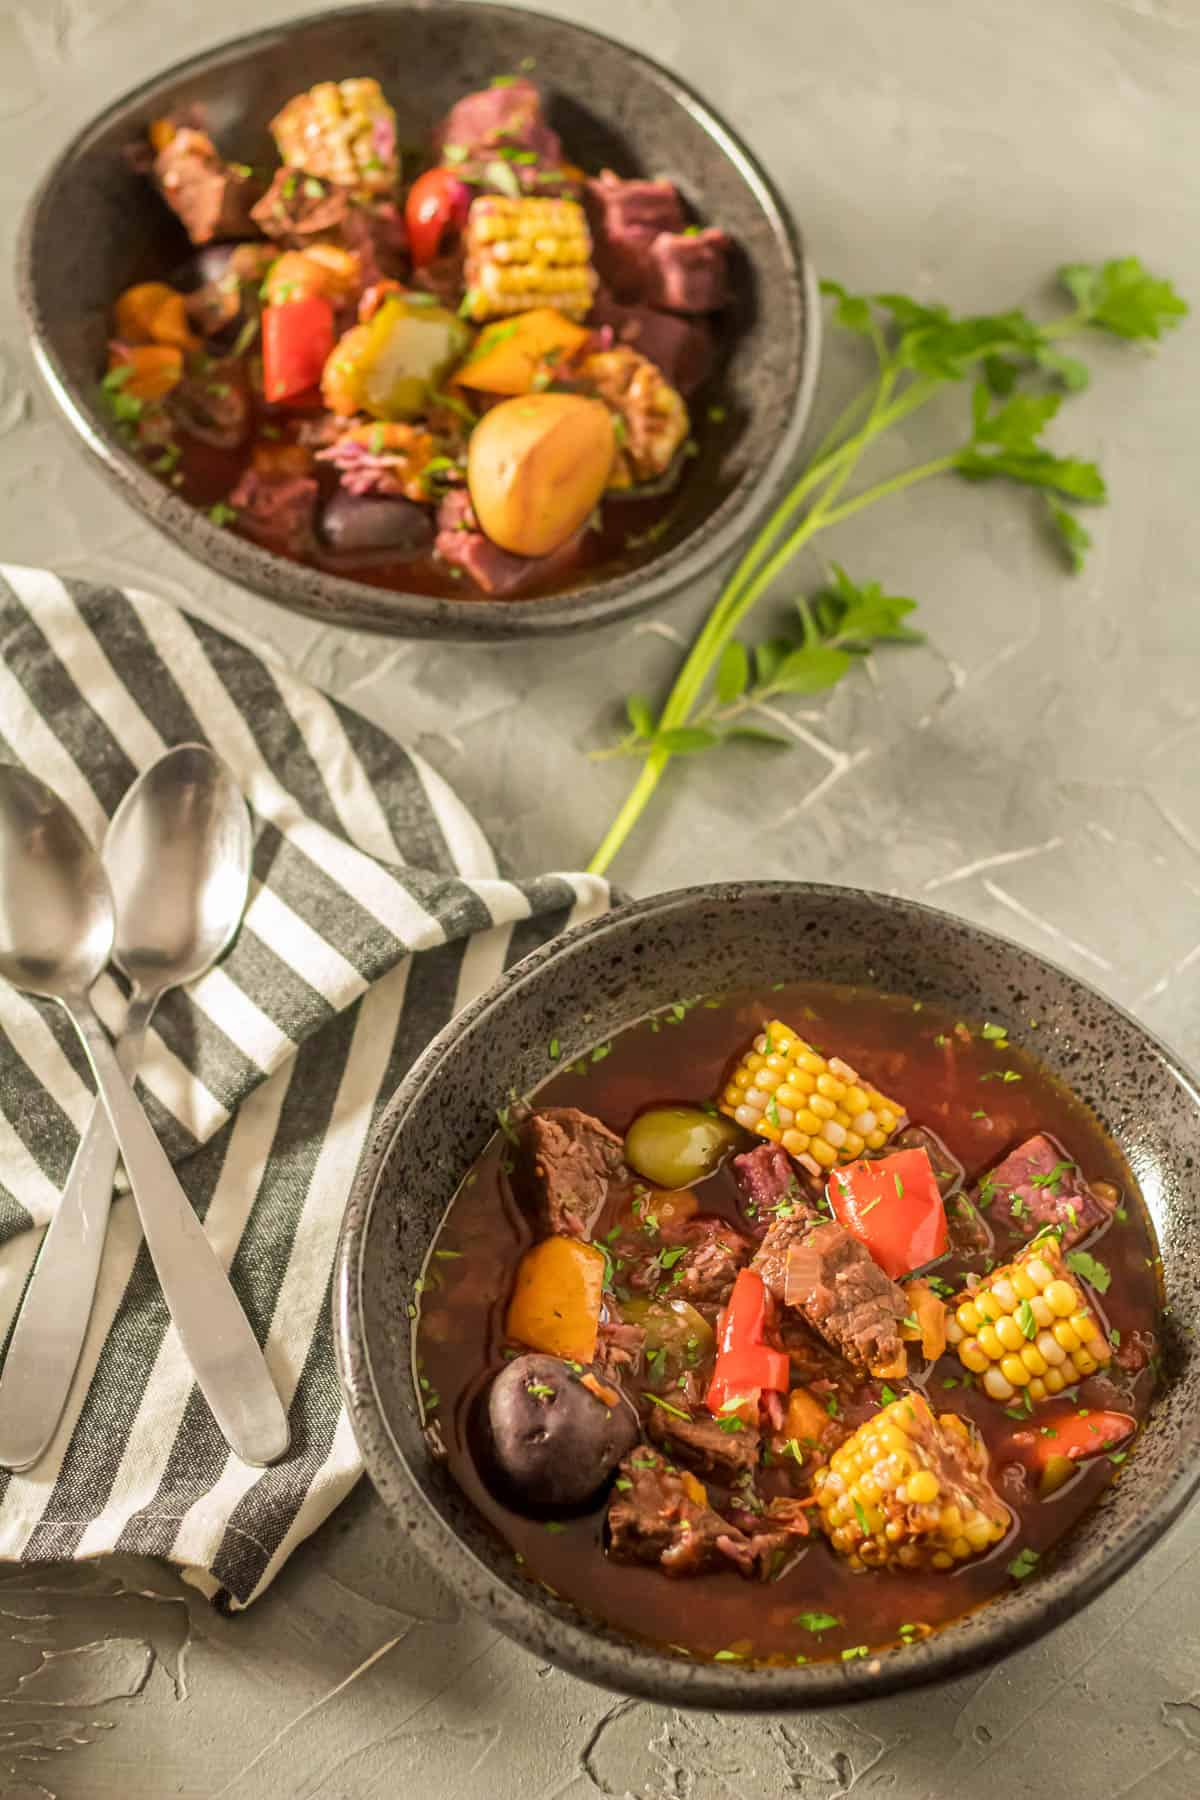 Instant Pot Argentinian Beef Stew (Carbonada Criolla) in a black handmade ceramic bowl with a striped napkin.